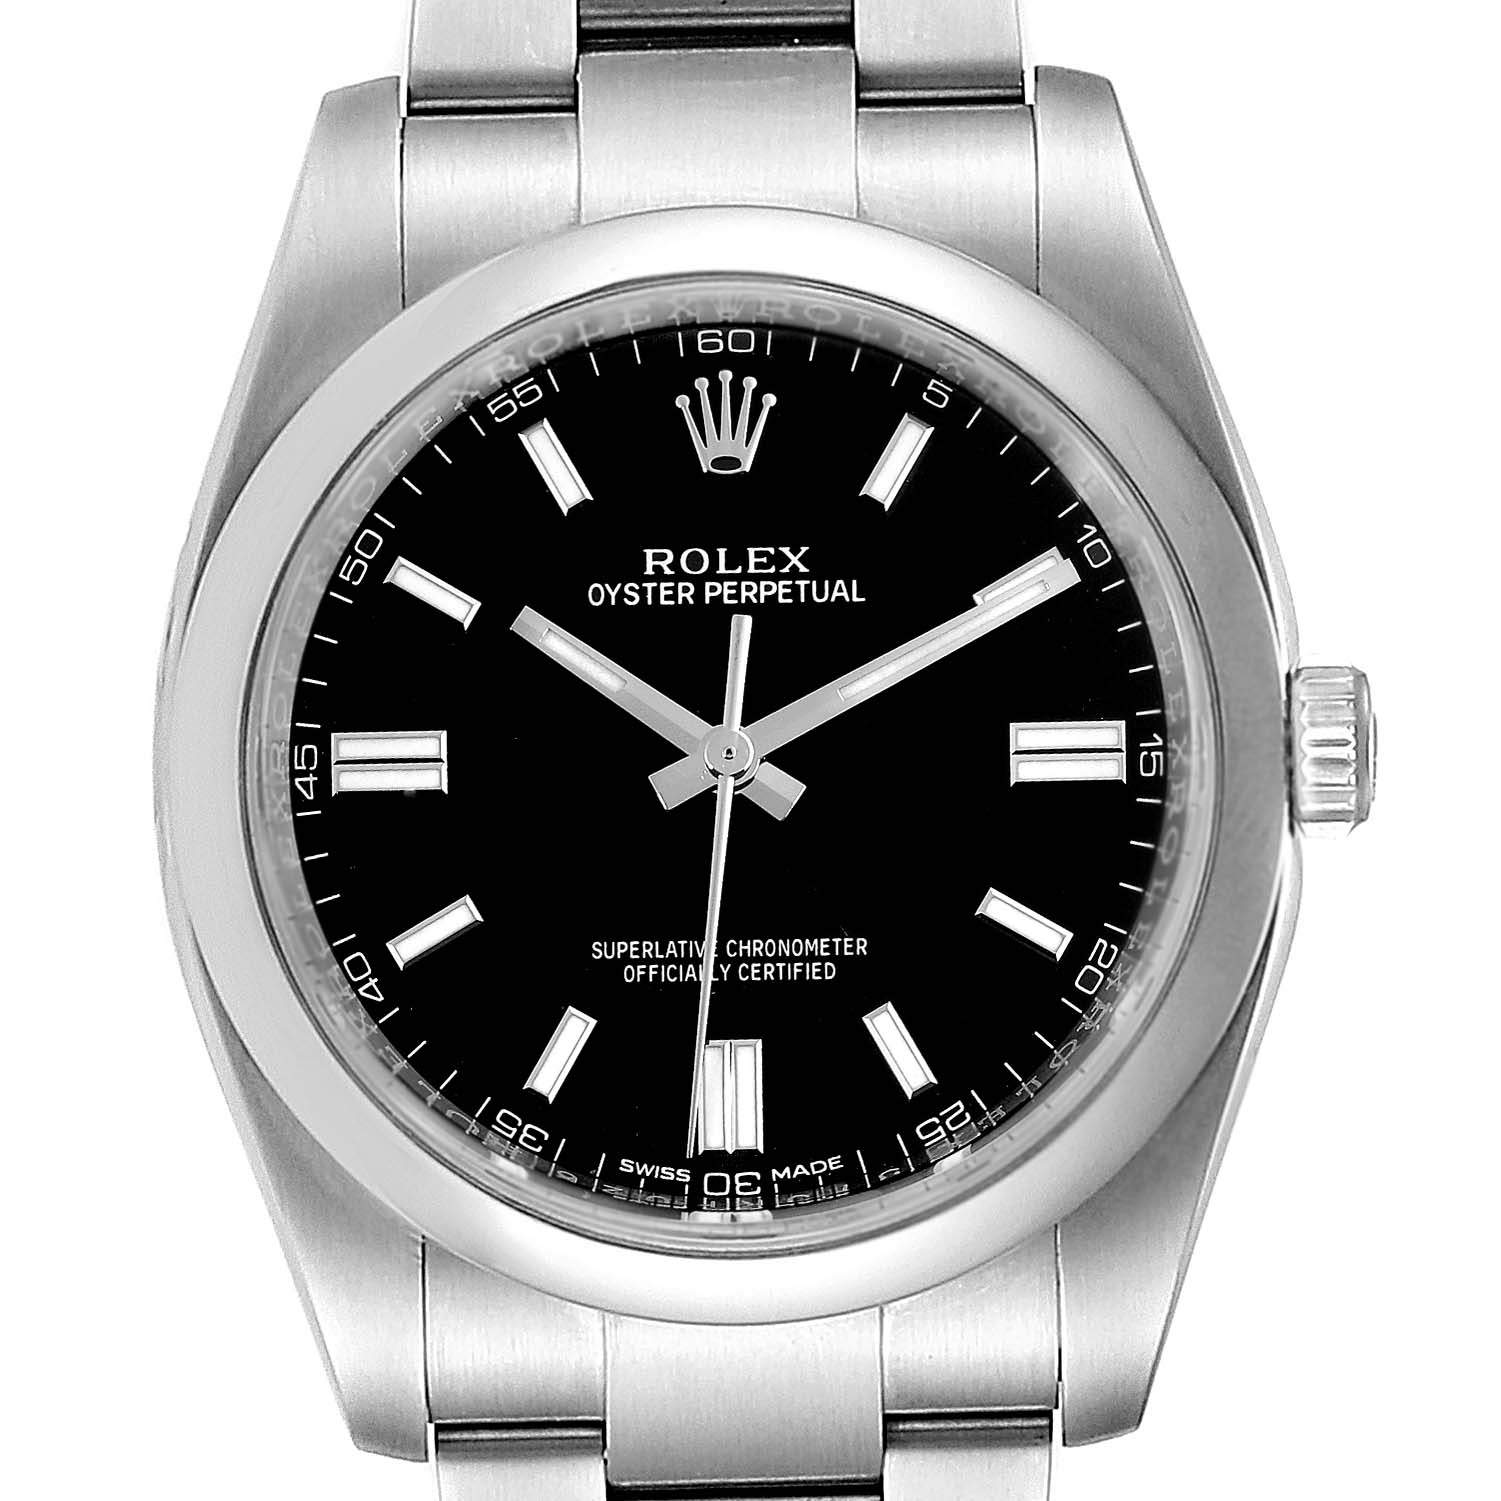 Photo of Rolex Oyster Perpetual 36 Rhodium Dial Steel Mens Watch 116000 Box Card